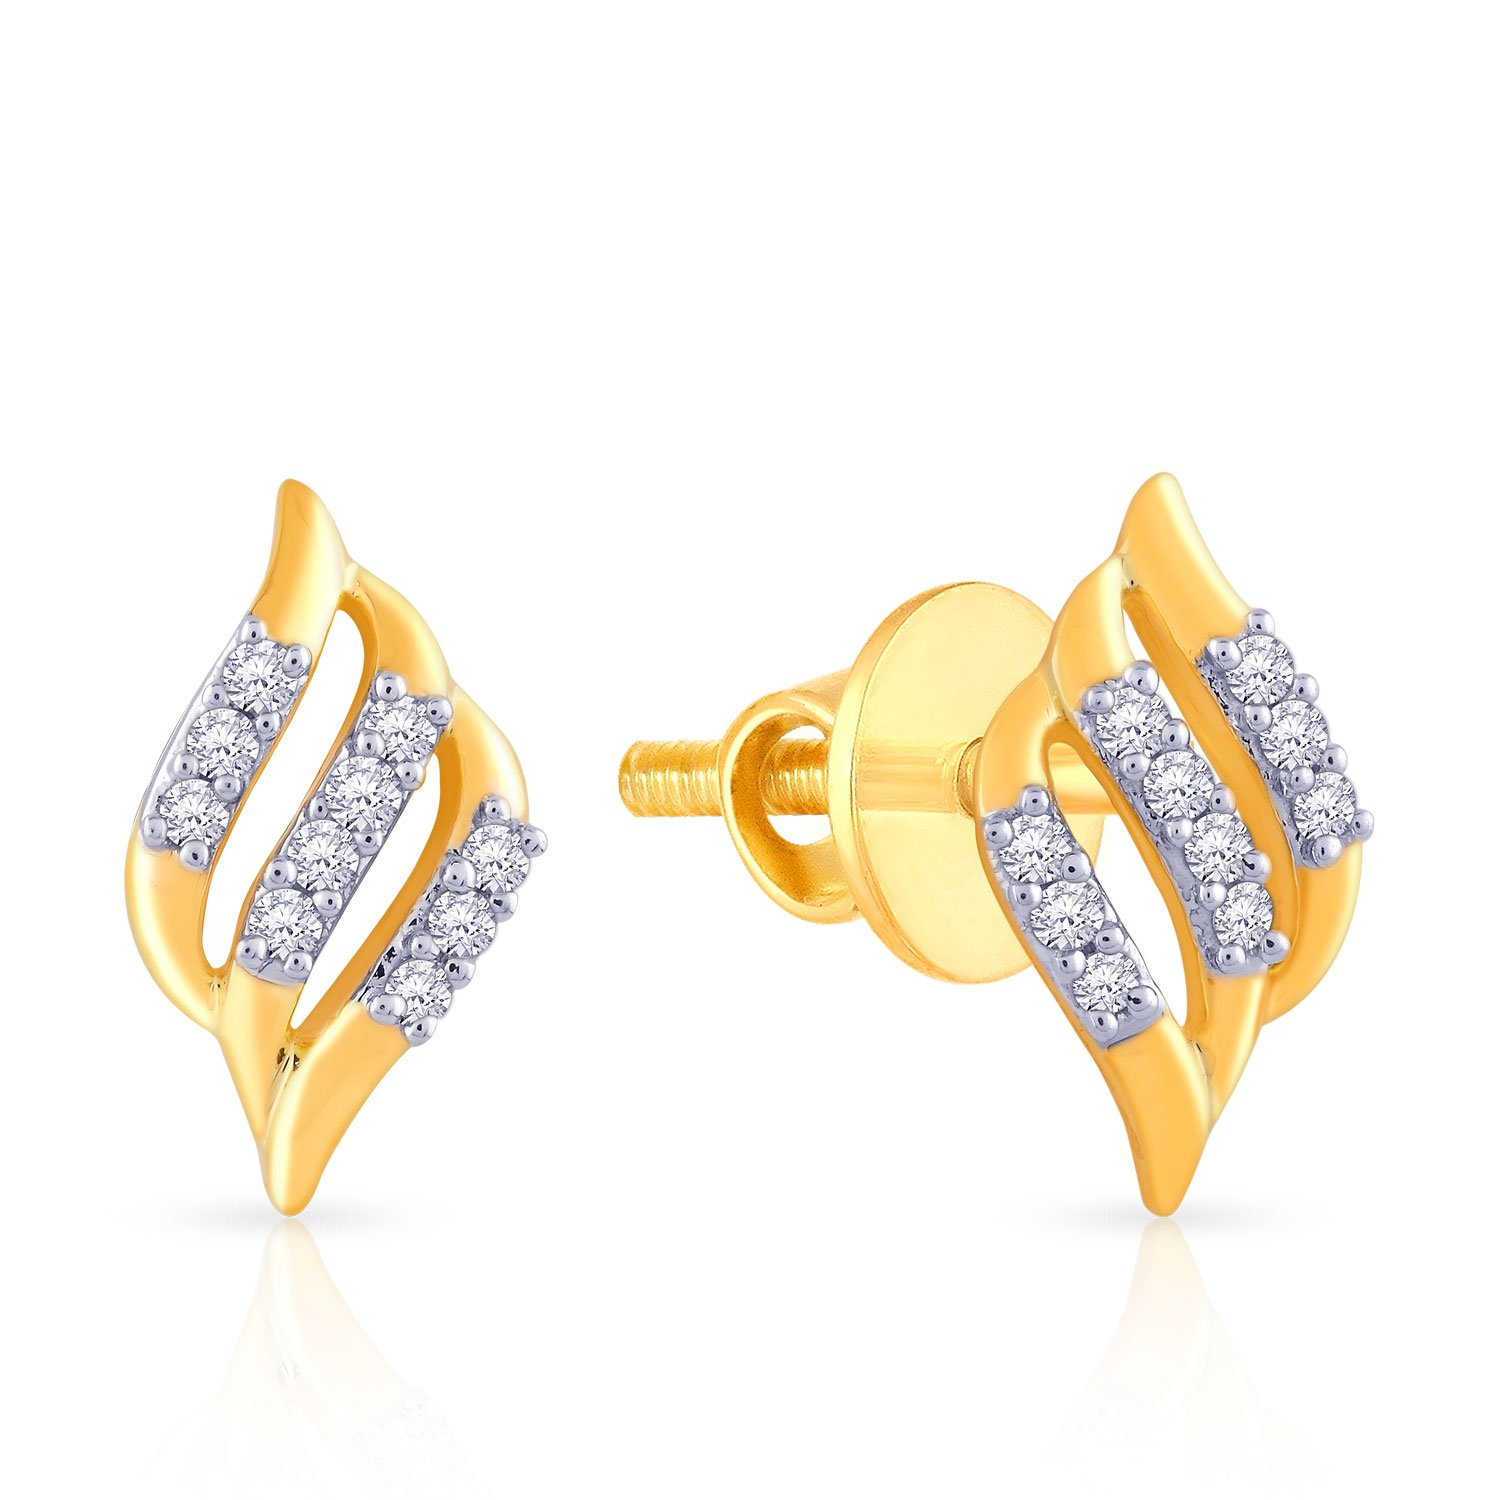 Flat 20% off On  Malabar Gold & Diamonds By Amazon | Malabar Gold and Diamonds 18k Yellow Gold and Diamond Stud Earrings @ Rs.8,600